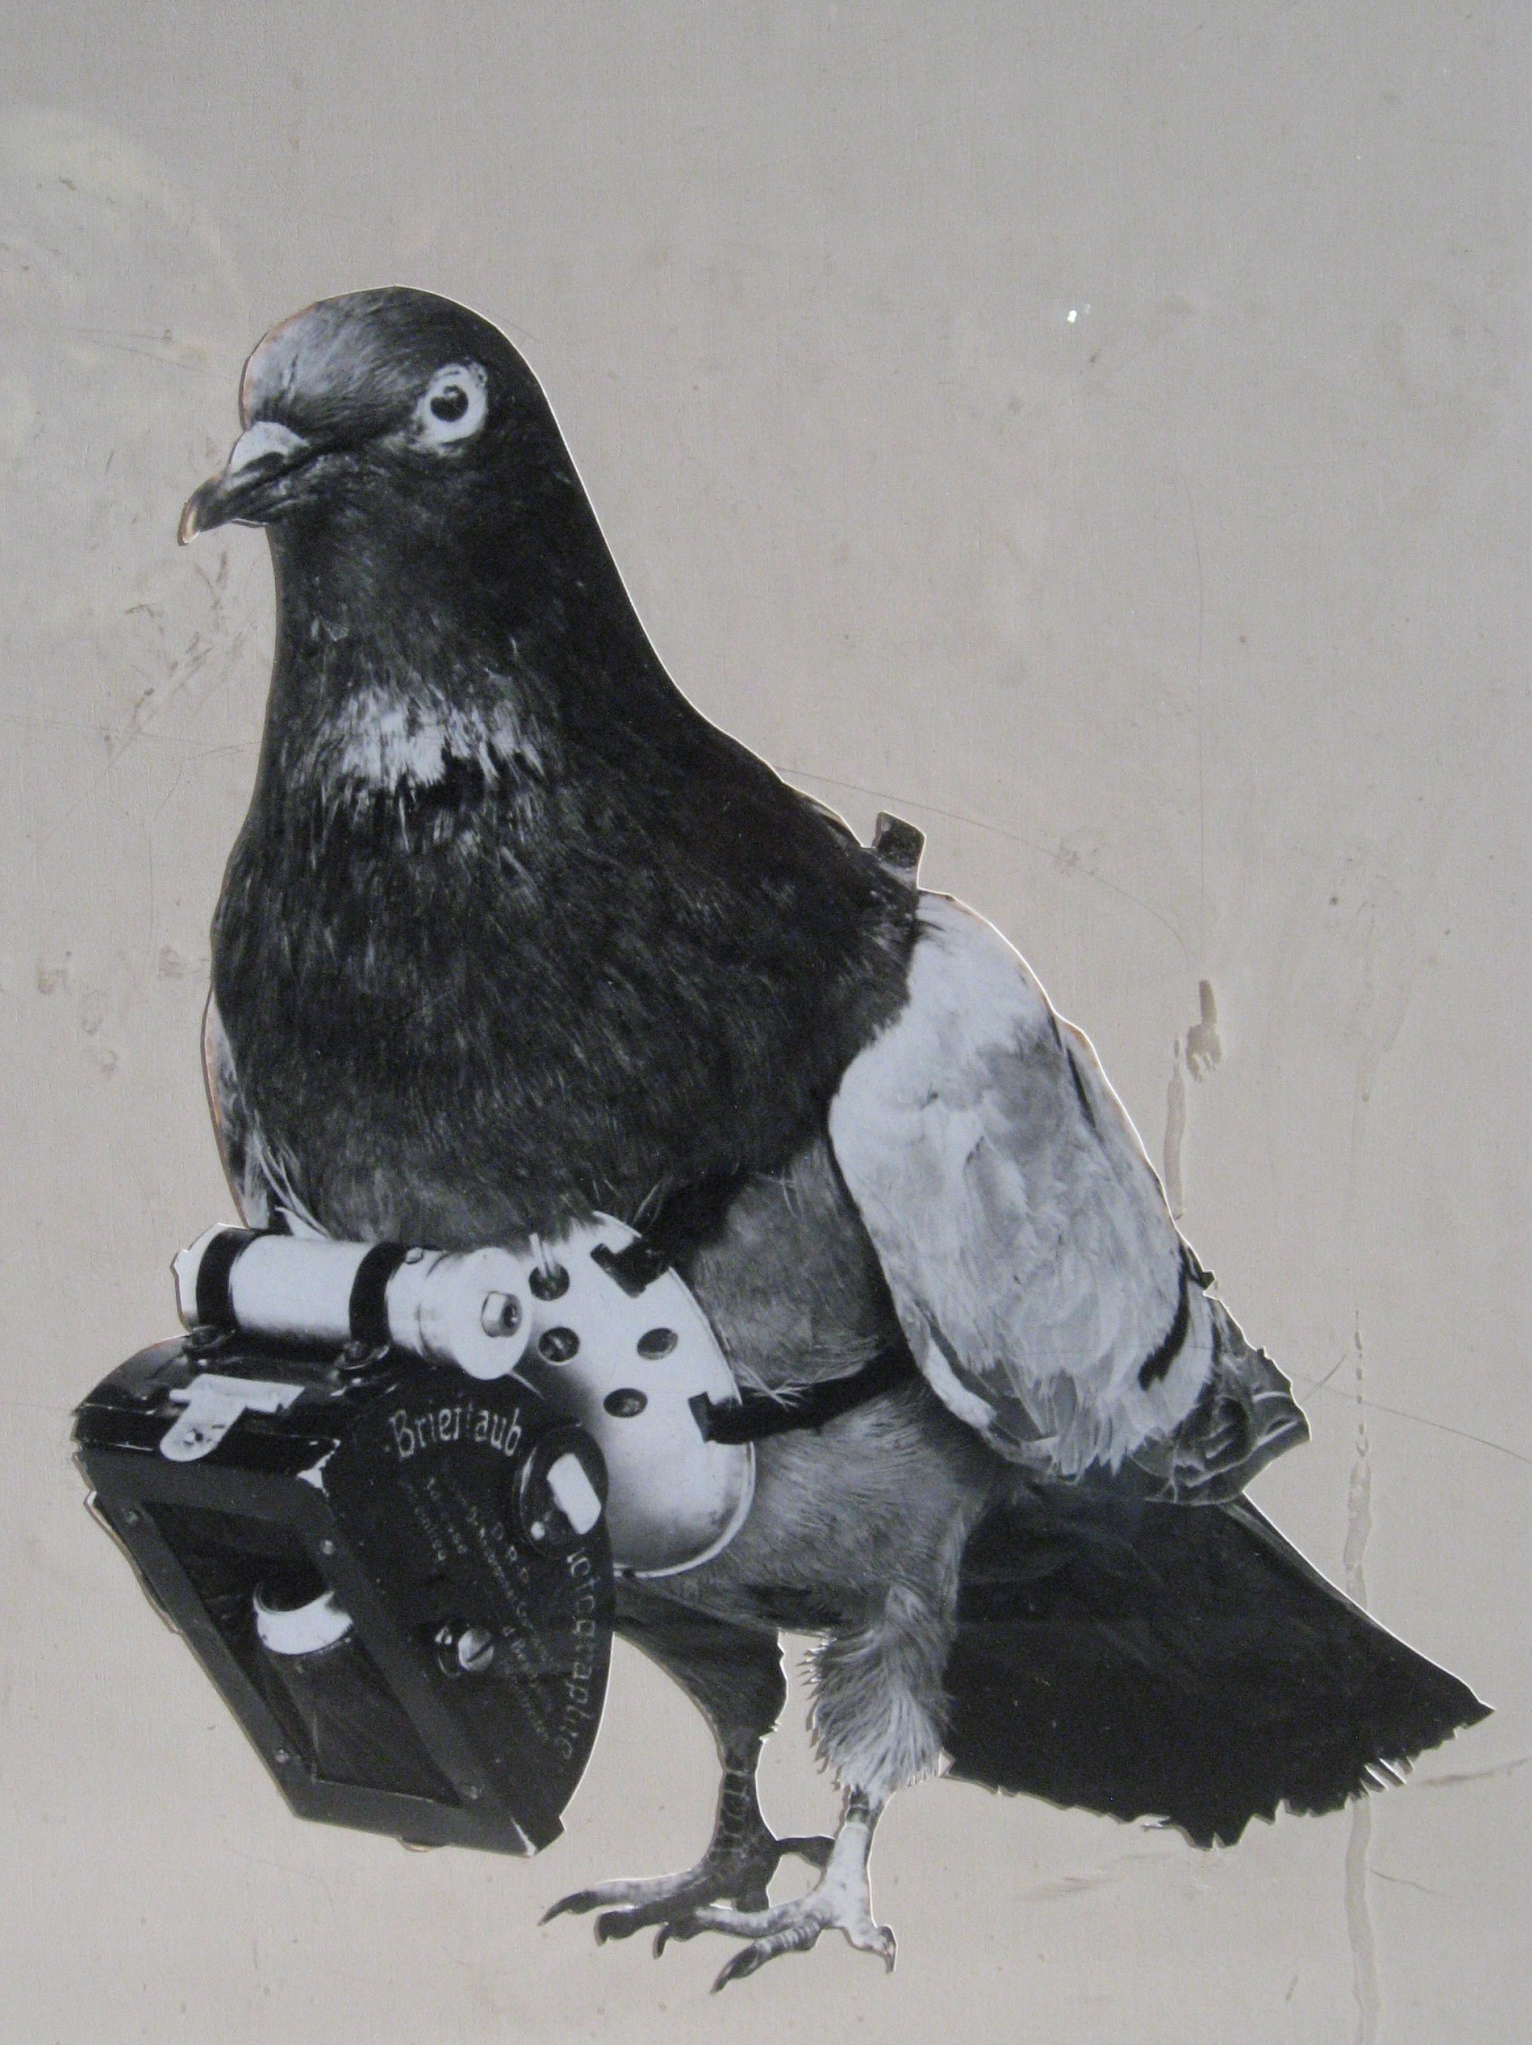 Dr_Julius_Neubronner_patented_a_miniature_pigeon_camera_activated_by_a_timing_mechanism,_1903.jpg